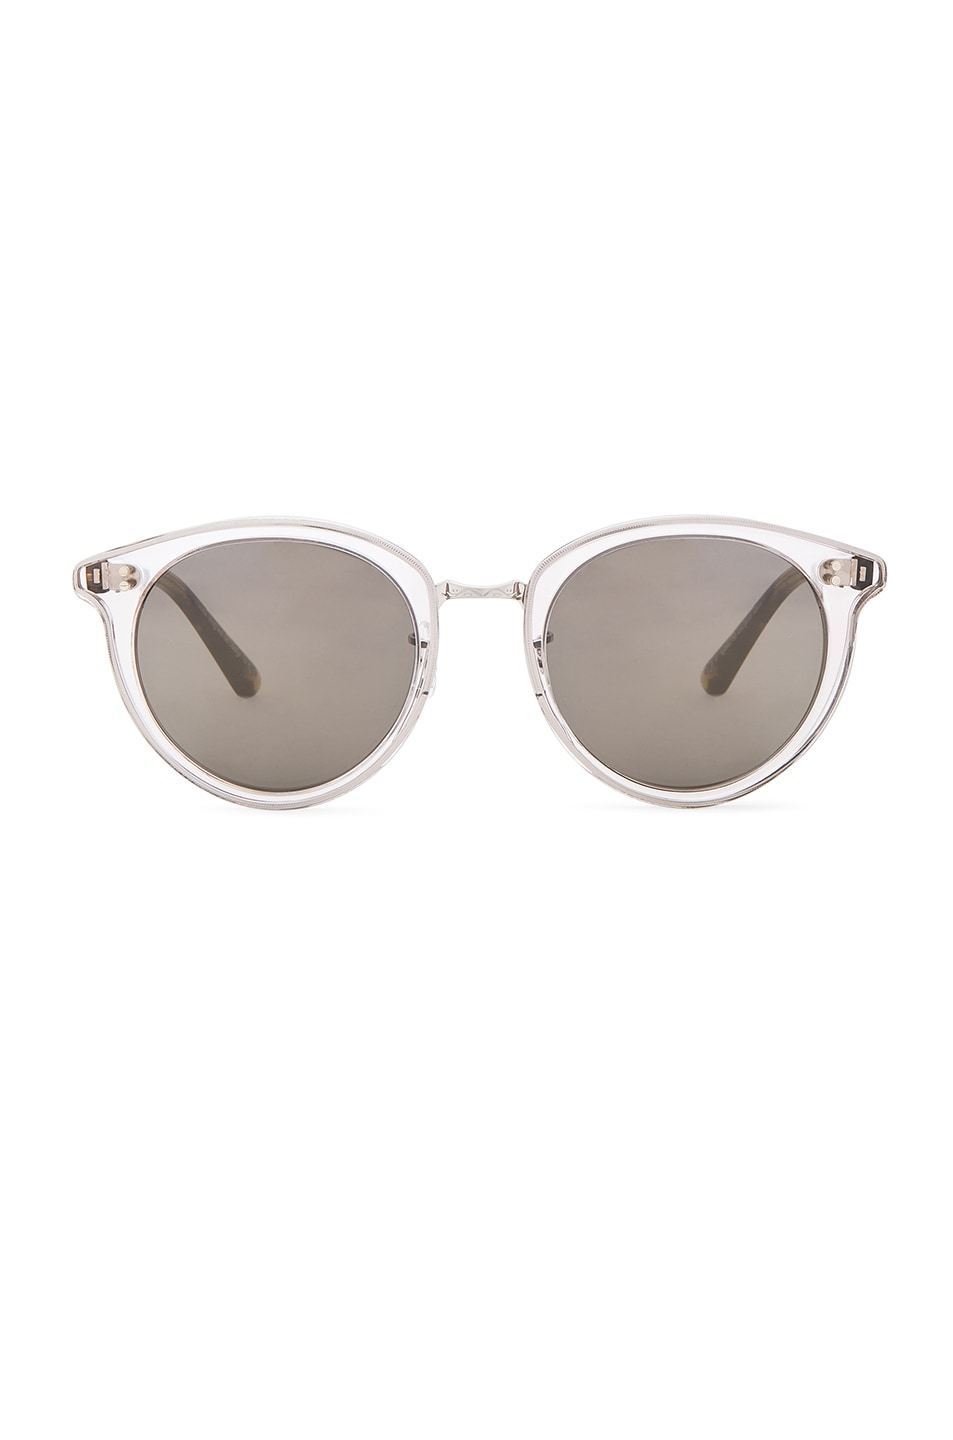 Image 1 of Oliver Peoples Spelman Sunglasses in Dune Tortoise